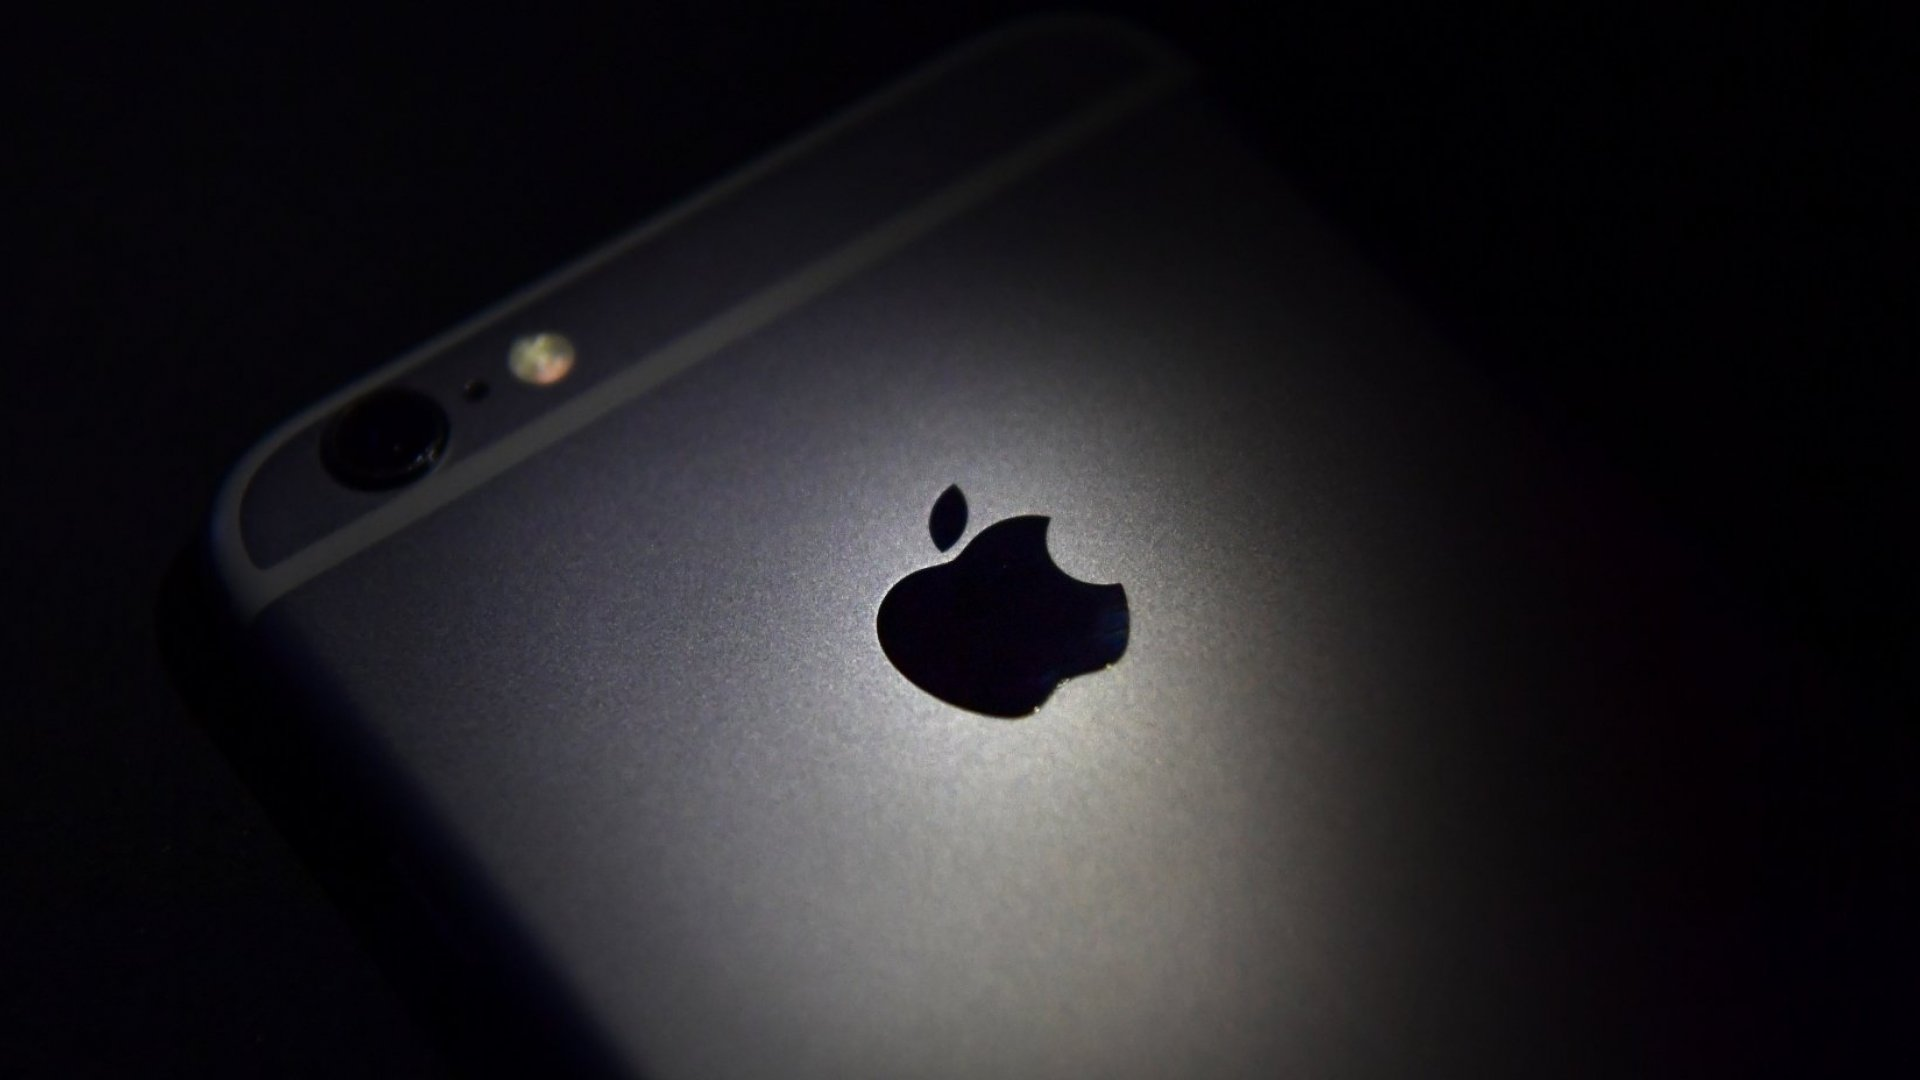 1.4 Billion iPhones and iPads Are at Risk Because of This Major Security Flaw